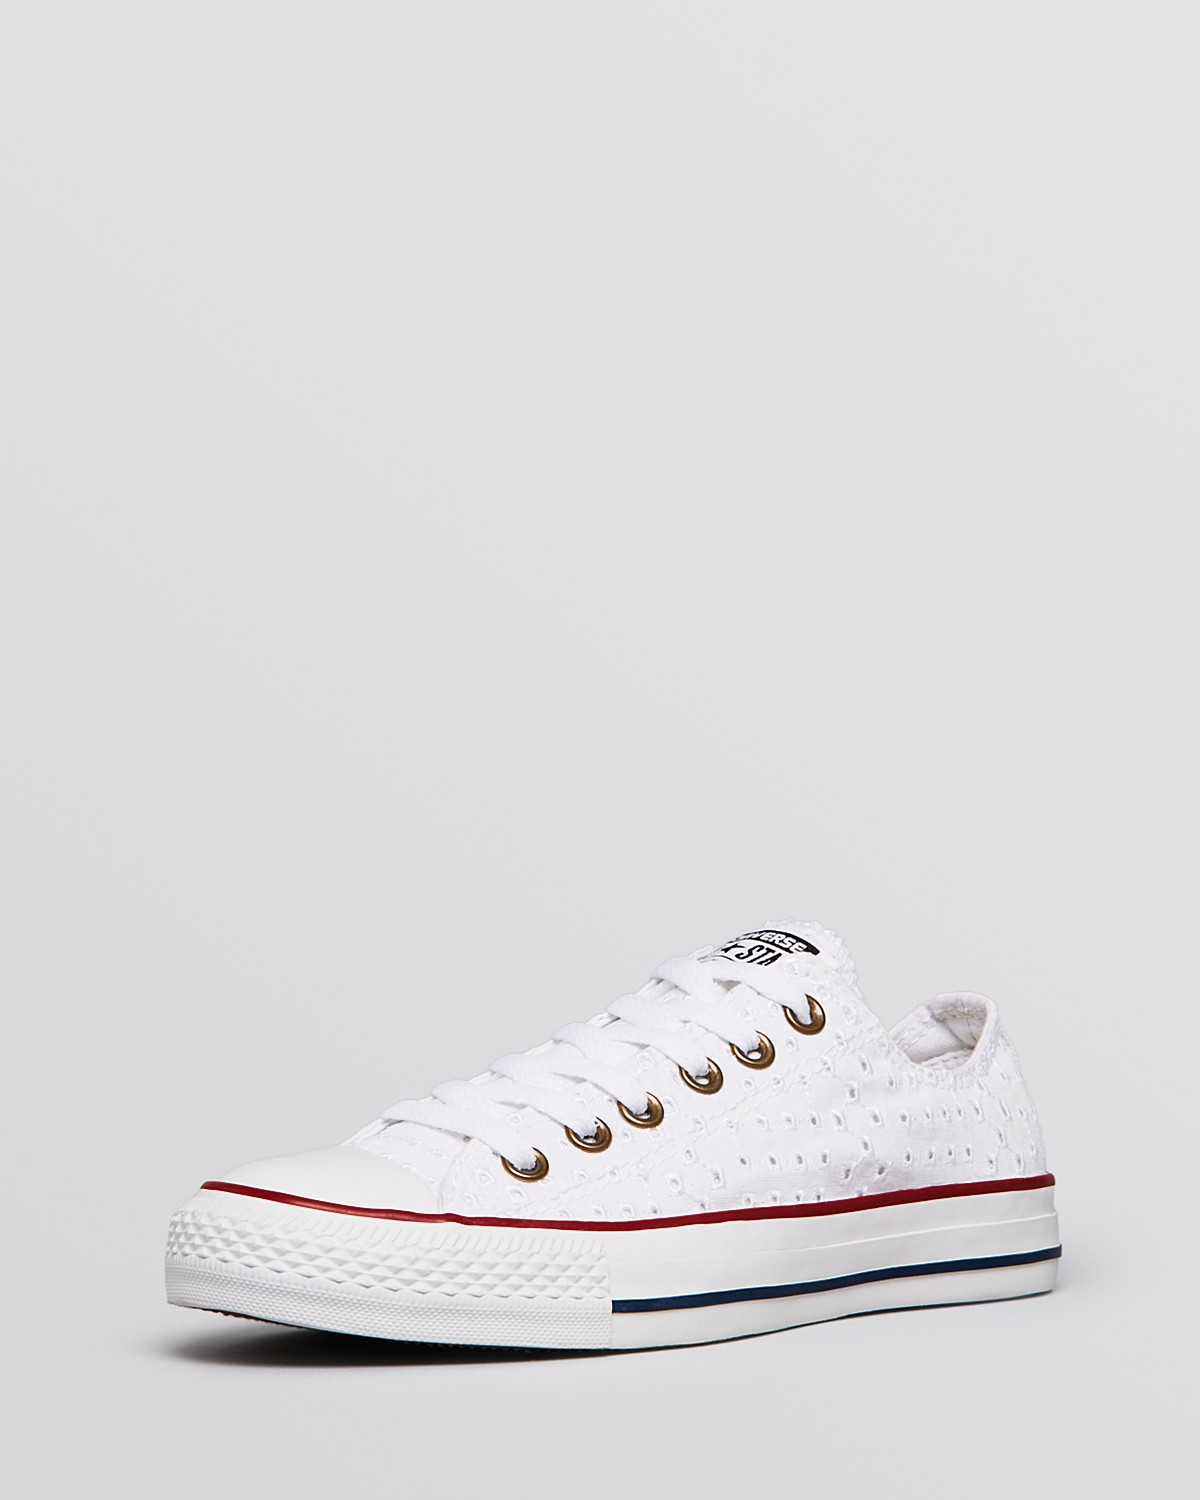 Converse Lace Up Low Top Sneakers - Chuck Taylor All Star | Bloomingdale's